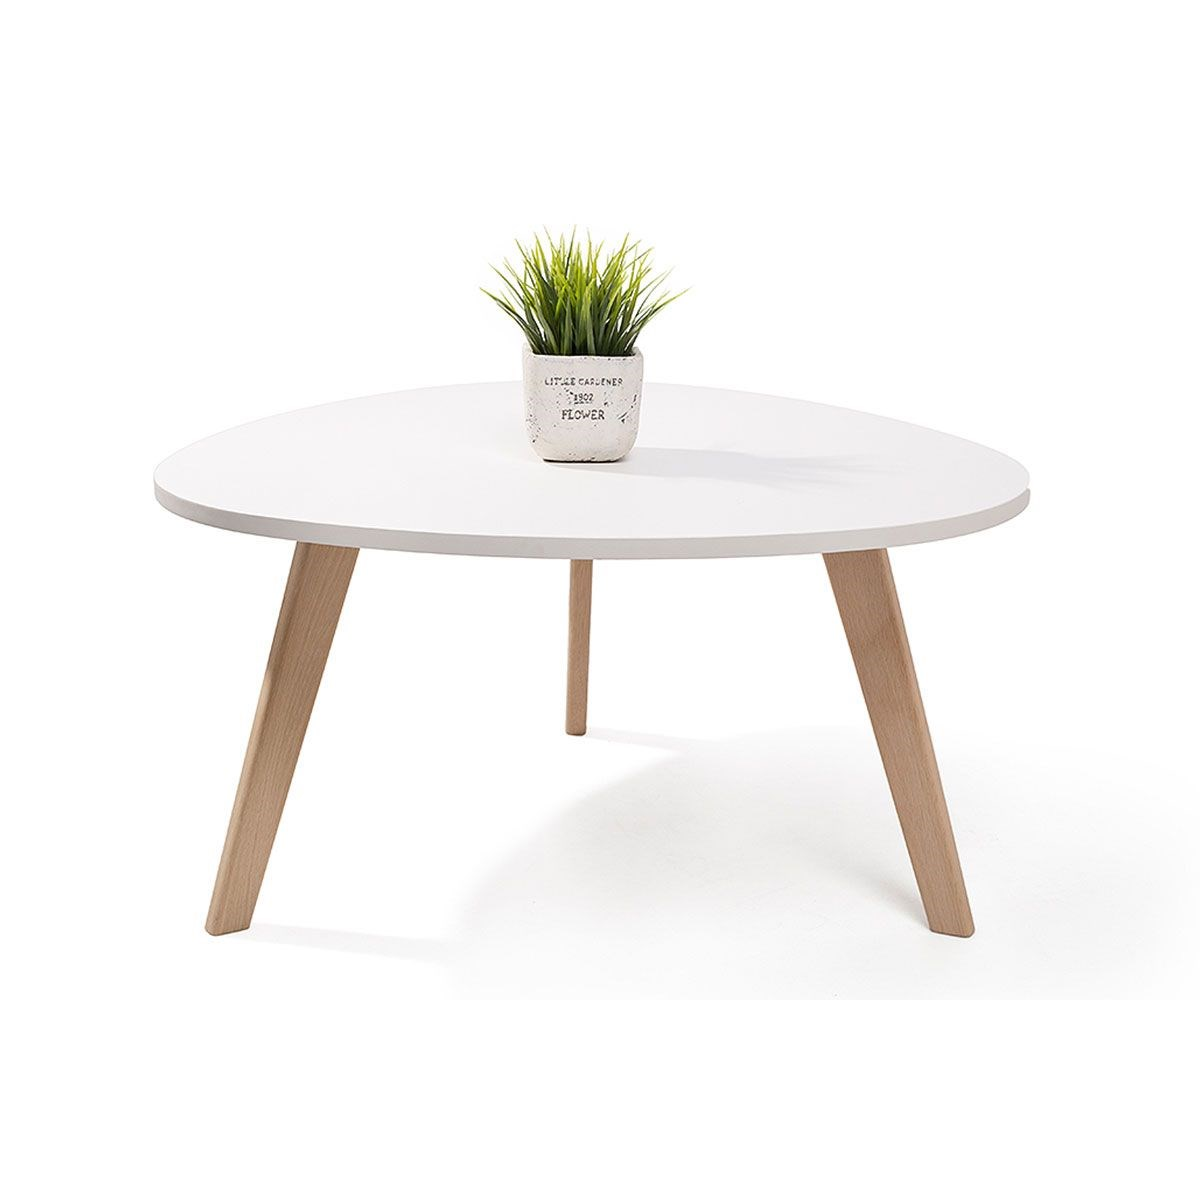 Table Basse Blanche Scandinave Table Basse Scandinave Alta